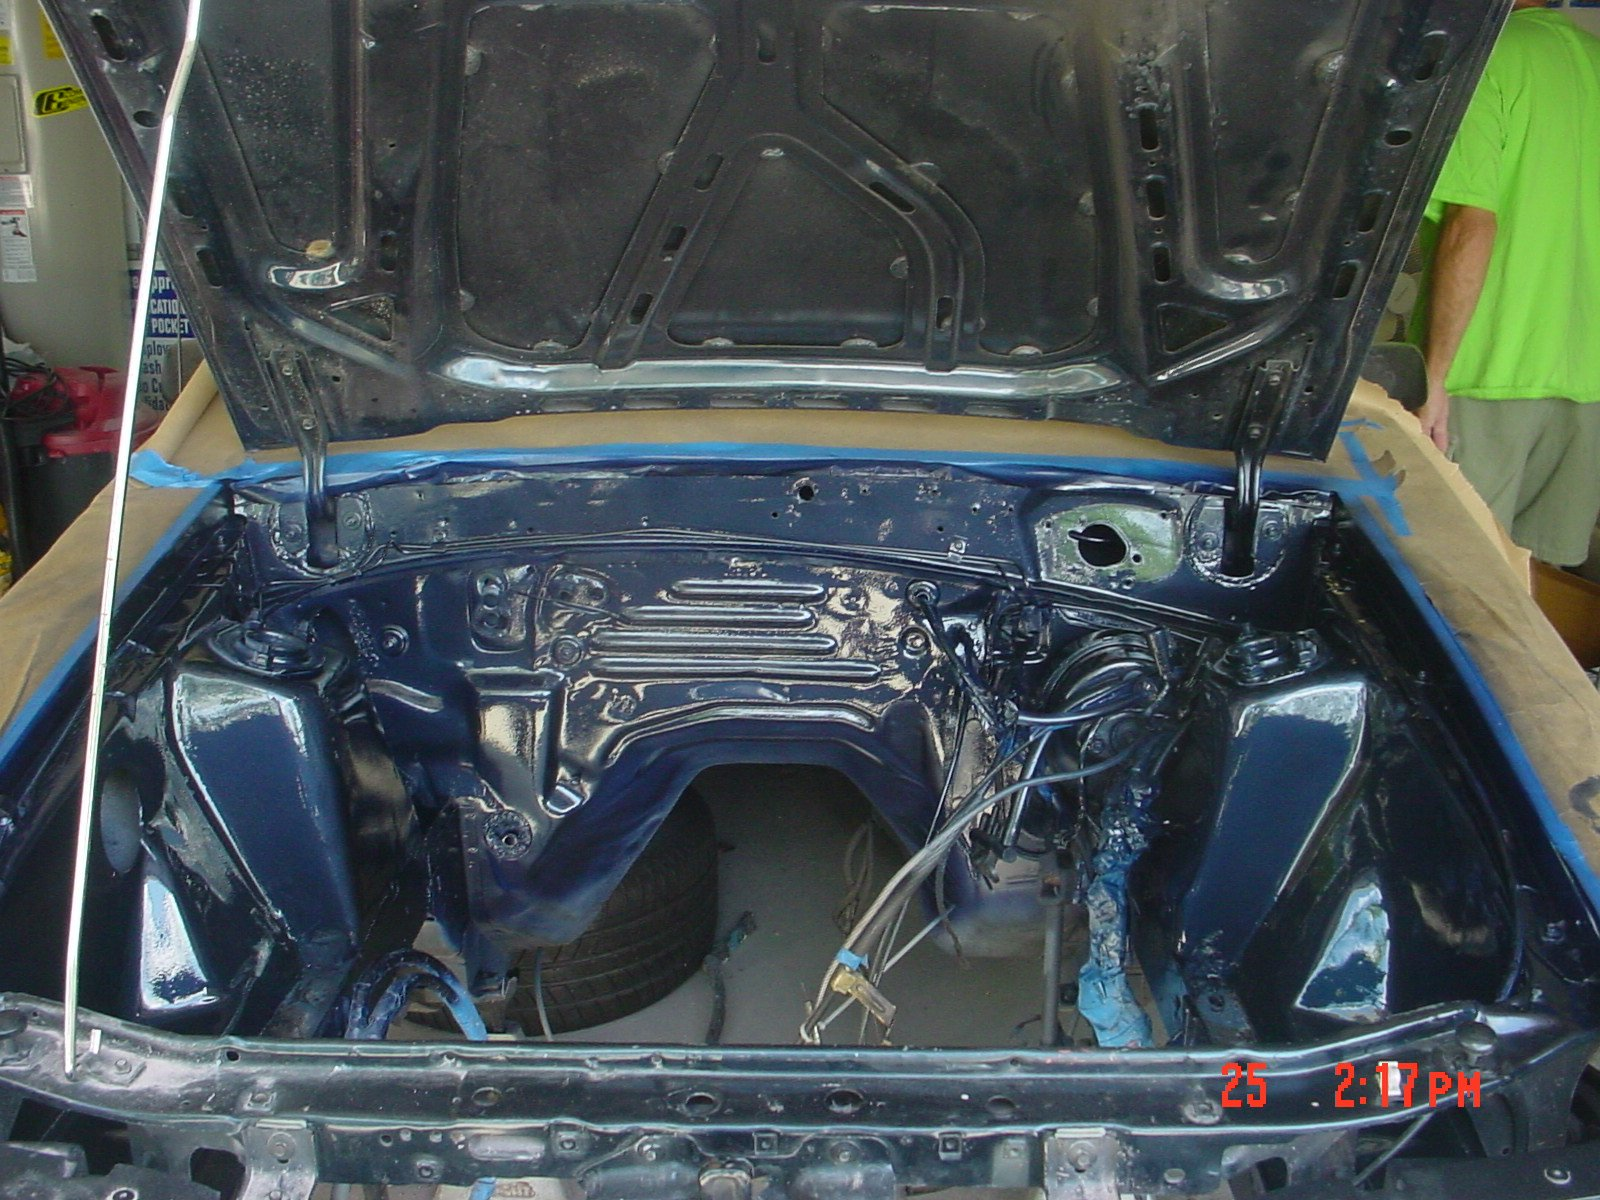 1991 mustang gt tips on shaving and tucking the engine bay ford mustang forum. Black Bedroom Furniture Sets. Home Design Ideas